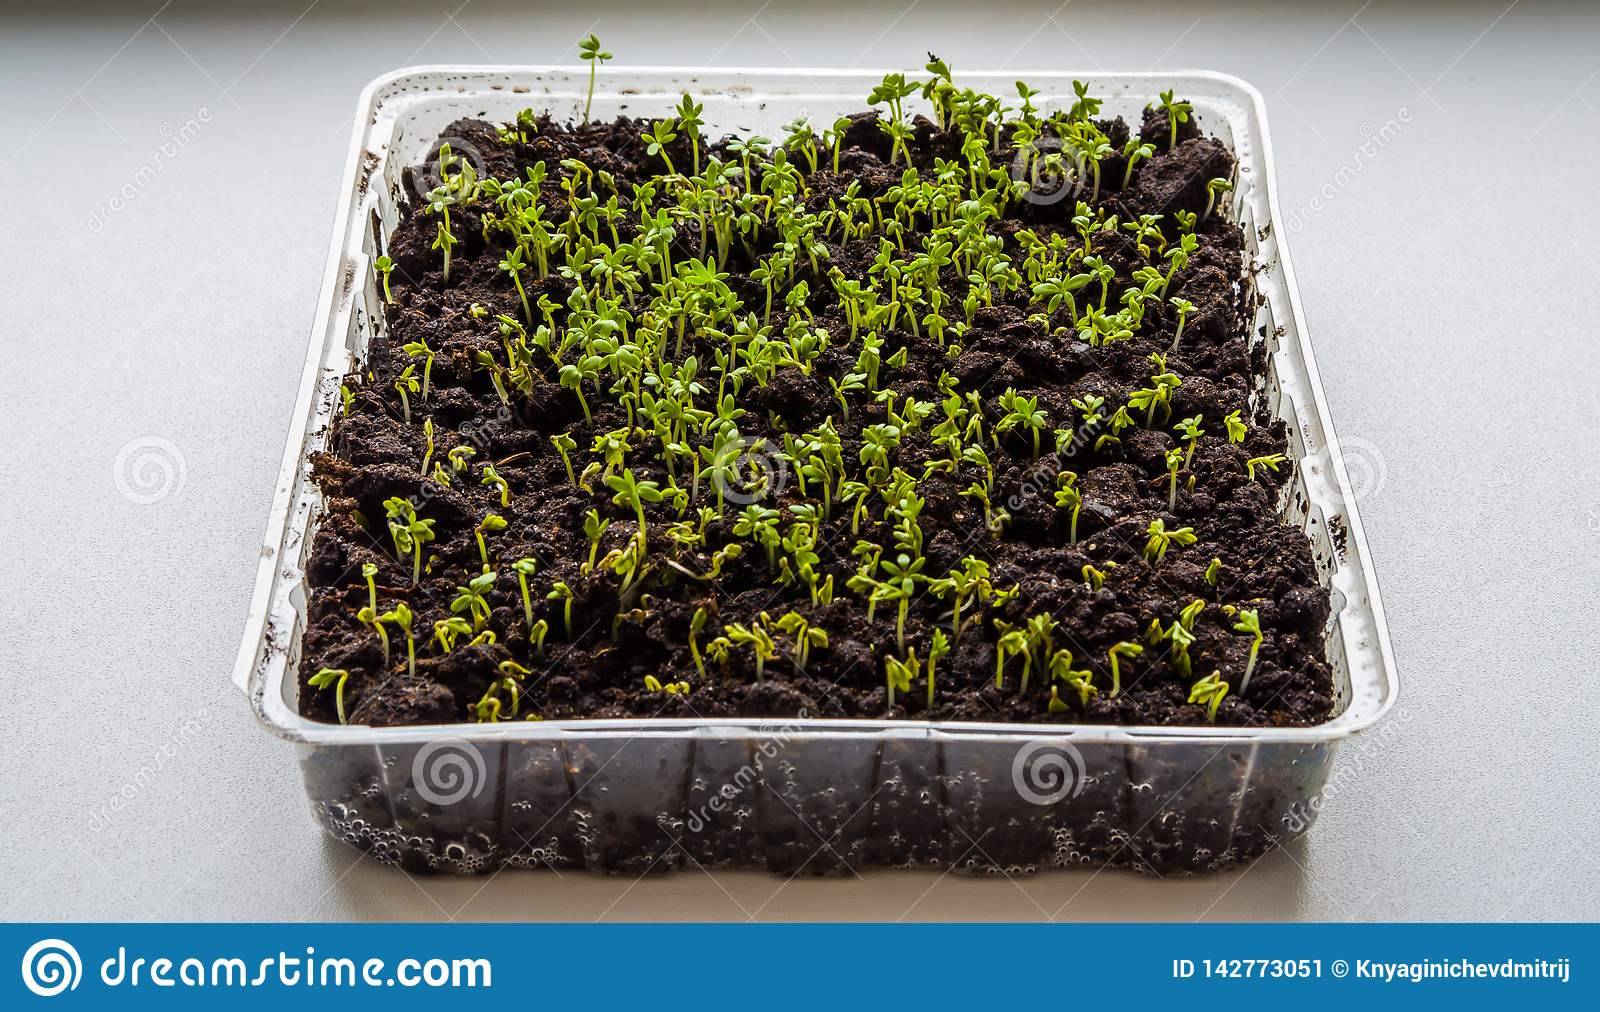 Lettuce sprouts grow indoors on the windowsill-image